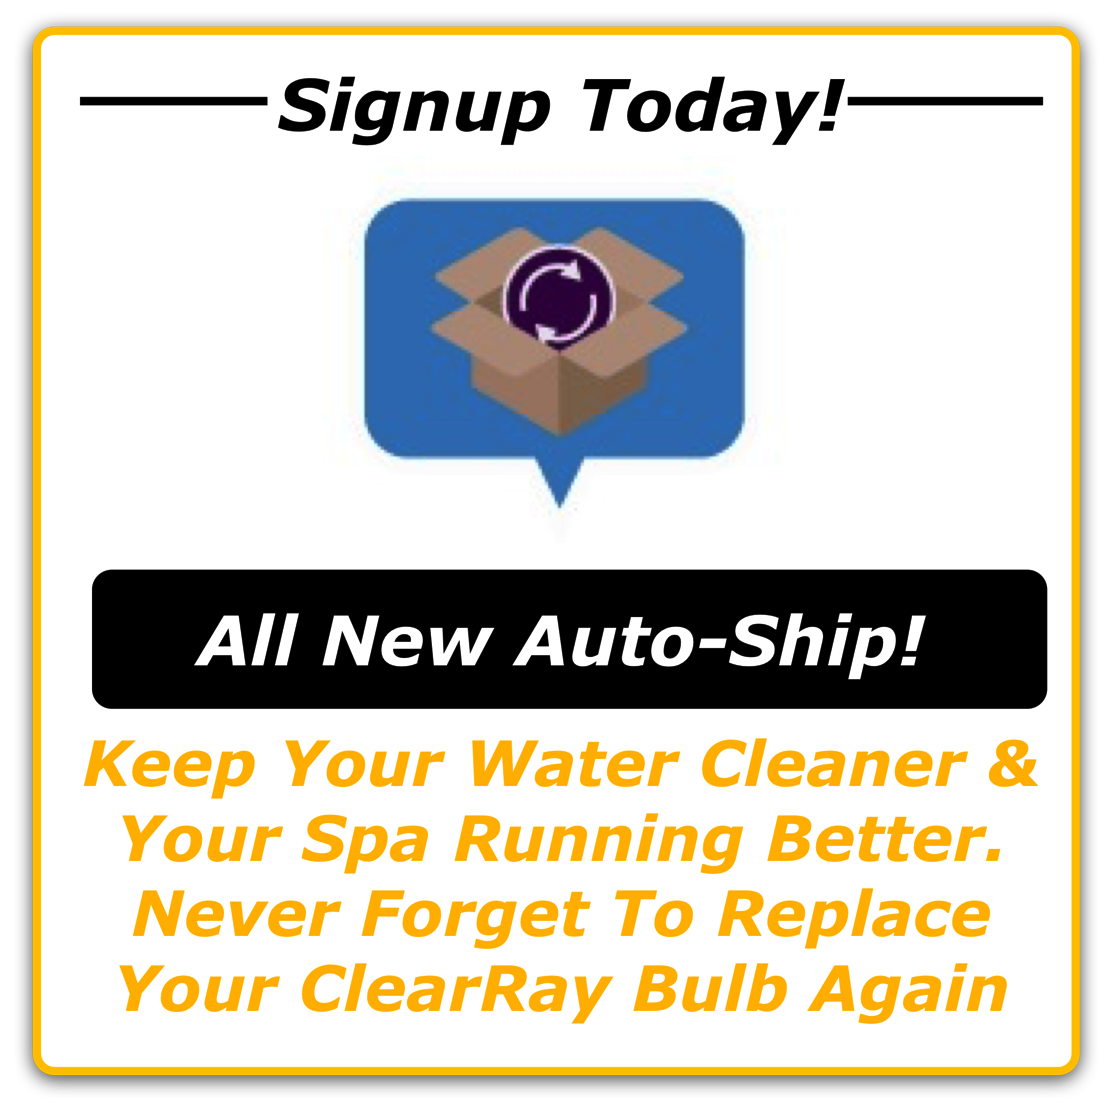 jacuzzi-sundance-clearray-bulb-6472-857-auto-ship.png